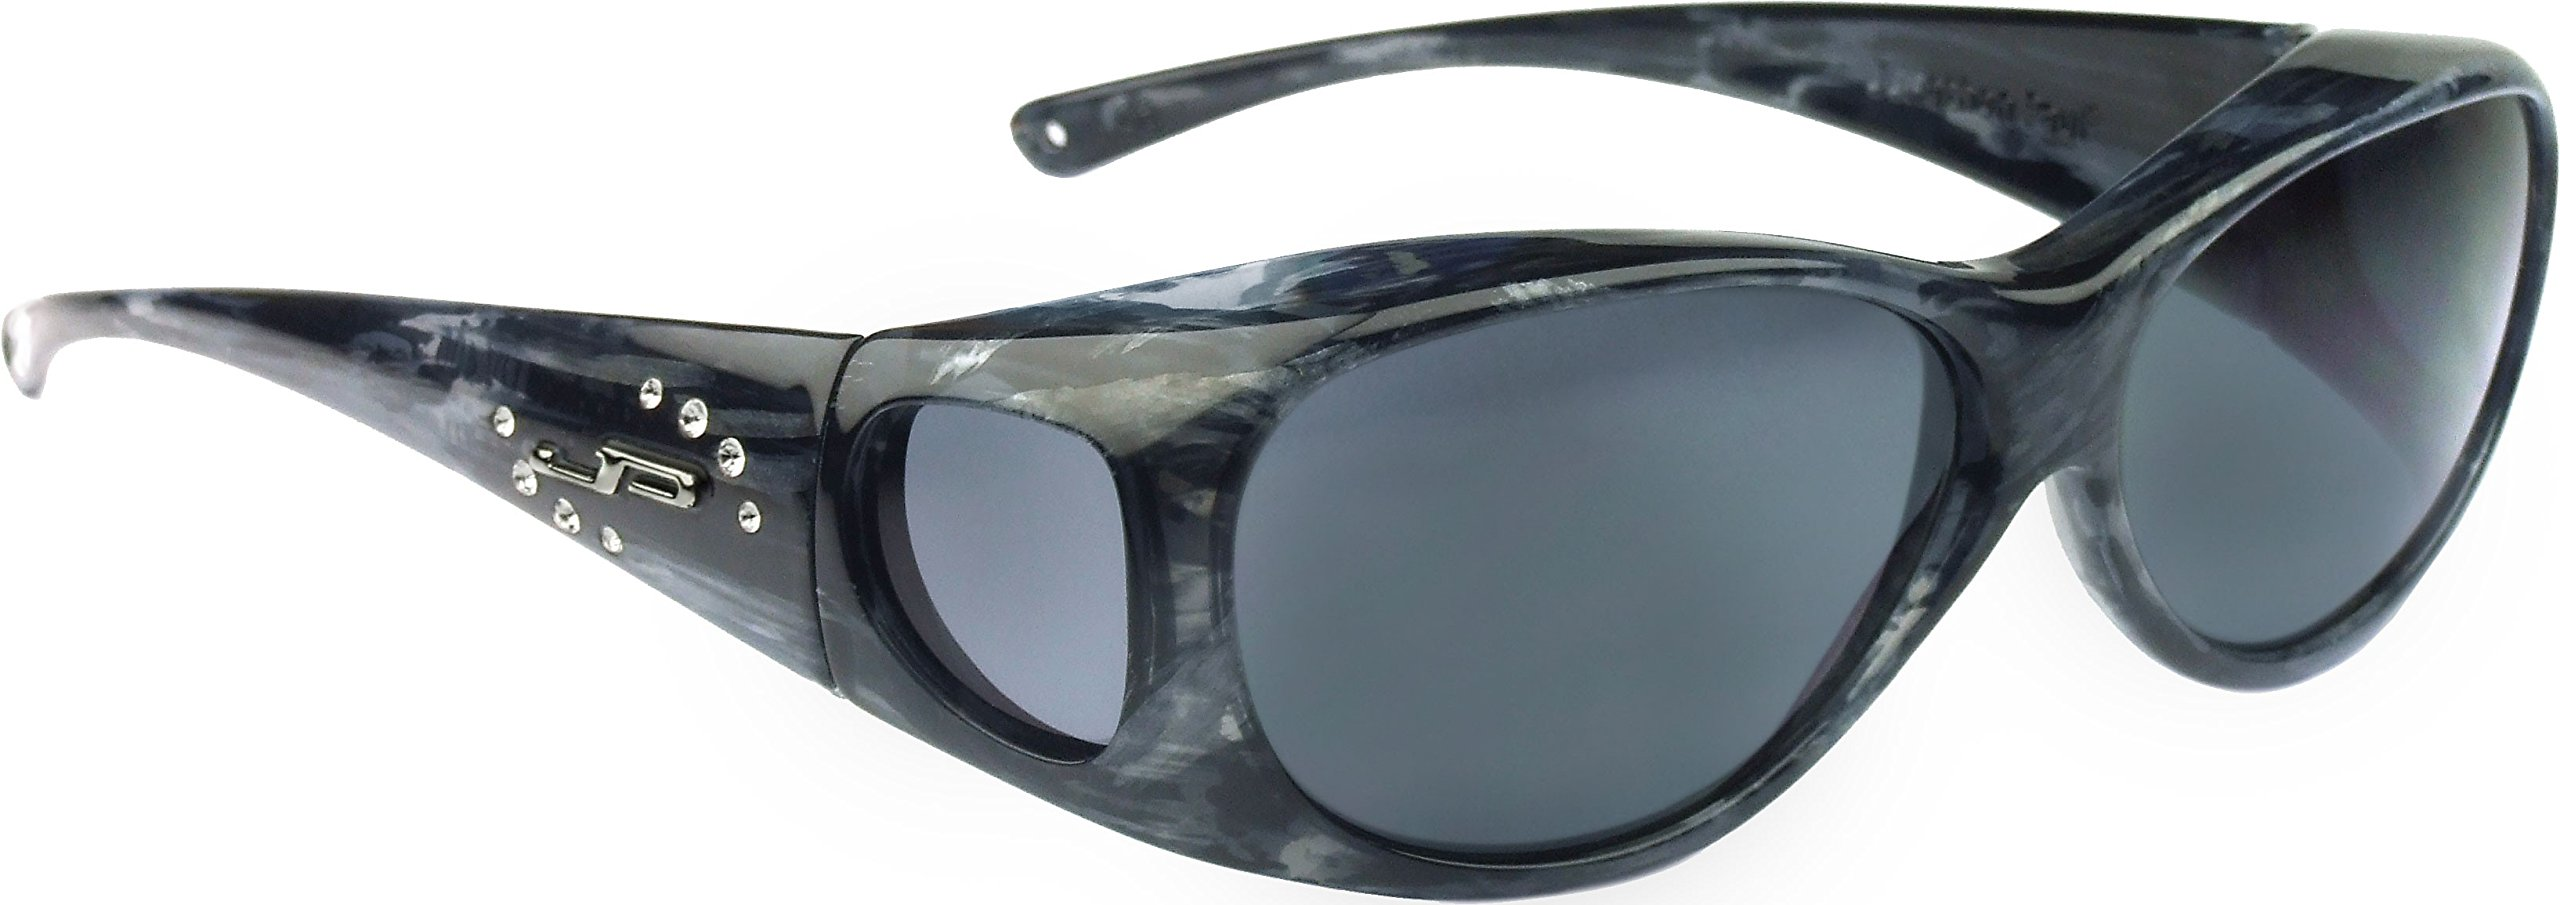 Fitovers Eyewear - Lotus Collection Designed to Fit Over Medium Oval Frames Not Exceeding 141mm X 40mm - Smoke Marble/polarized Grey